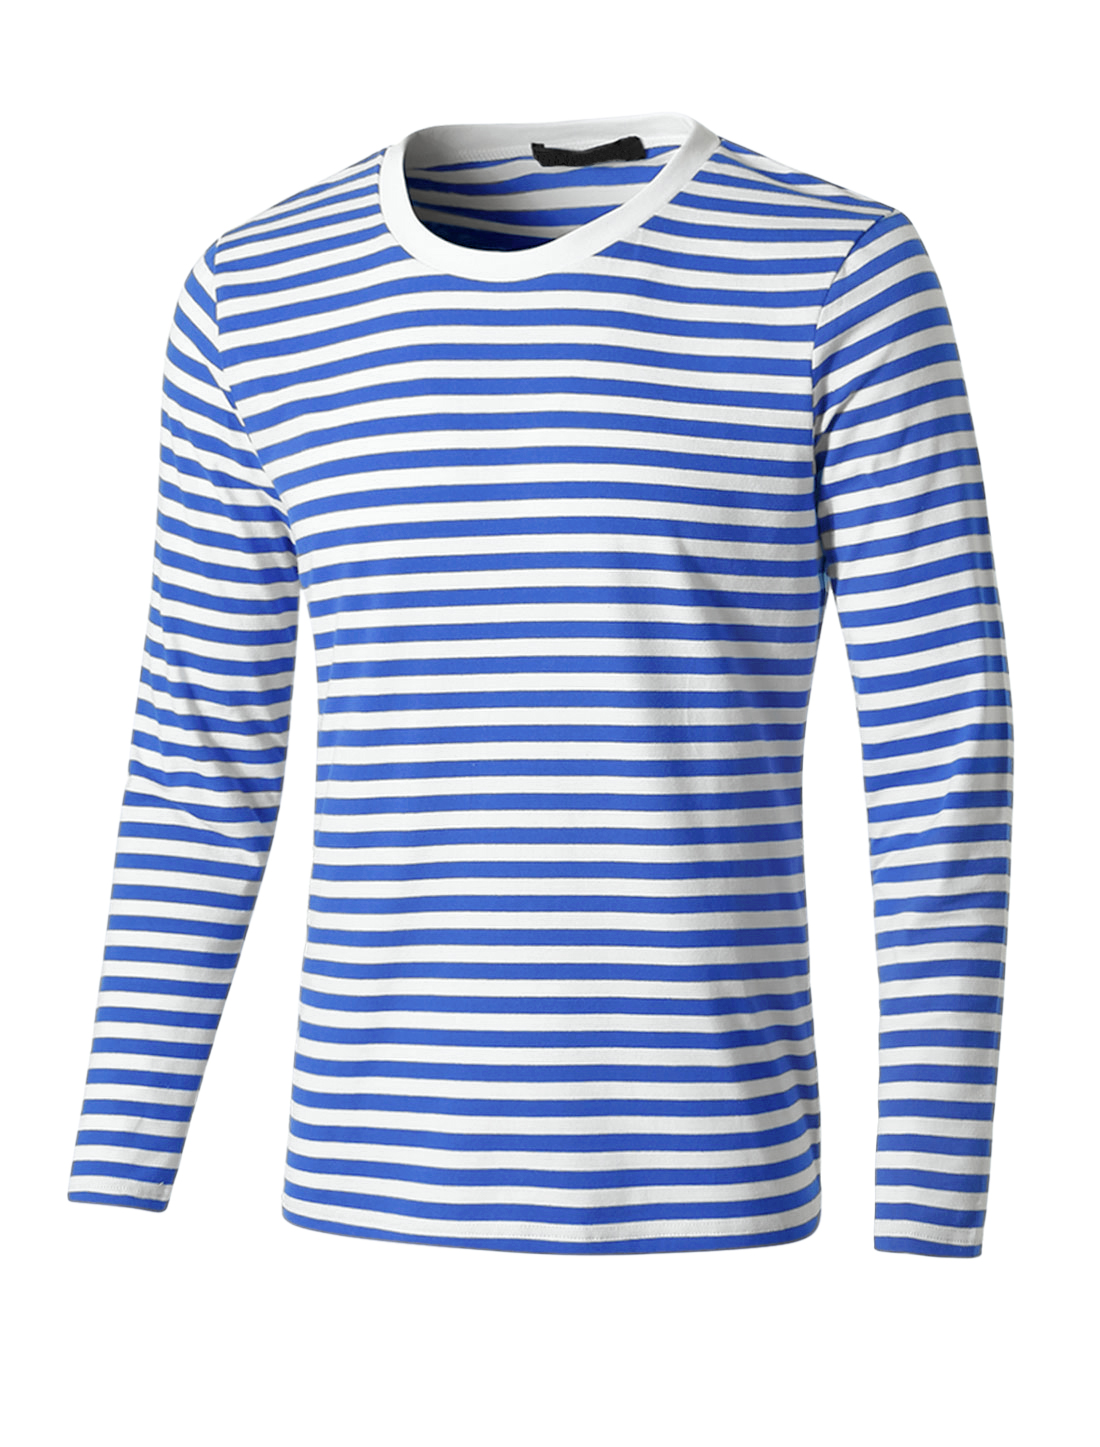 Men Crew Neck Long Sleeve Striped Tee T Shirt Blue S S (US 36)